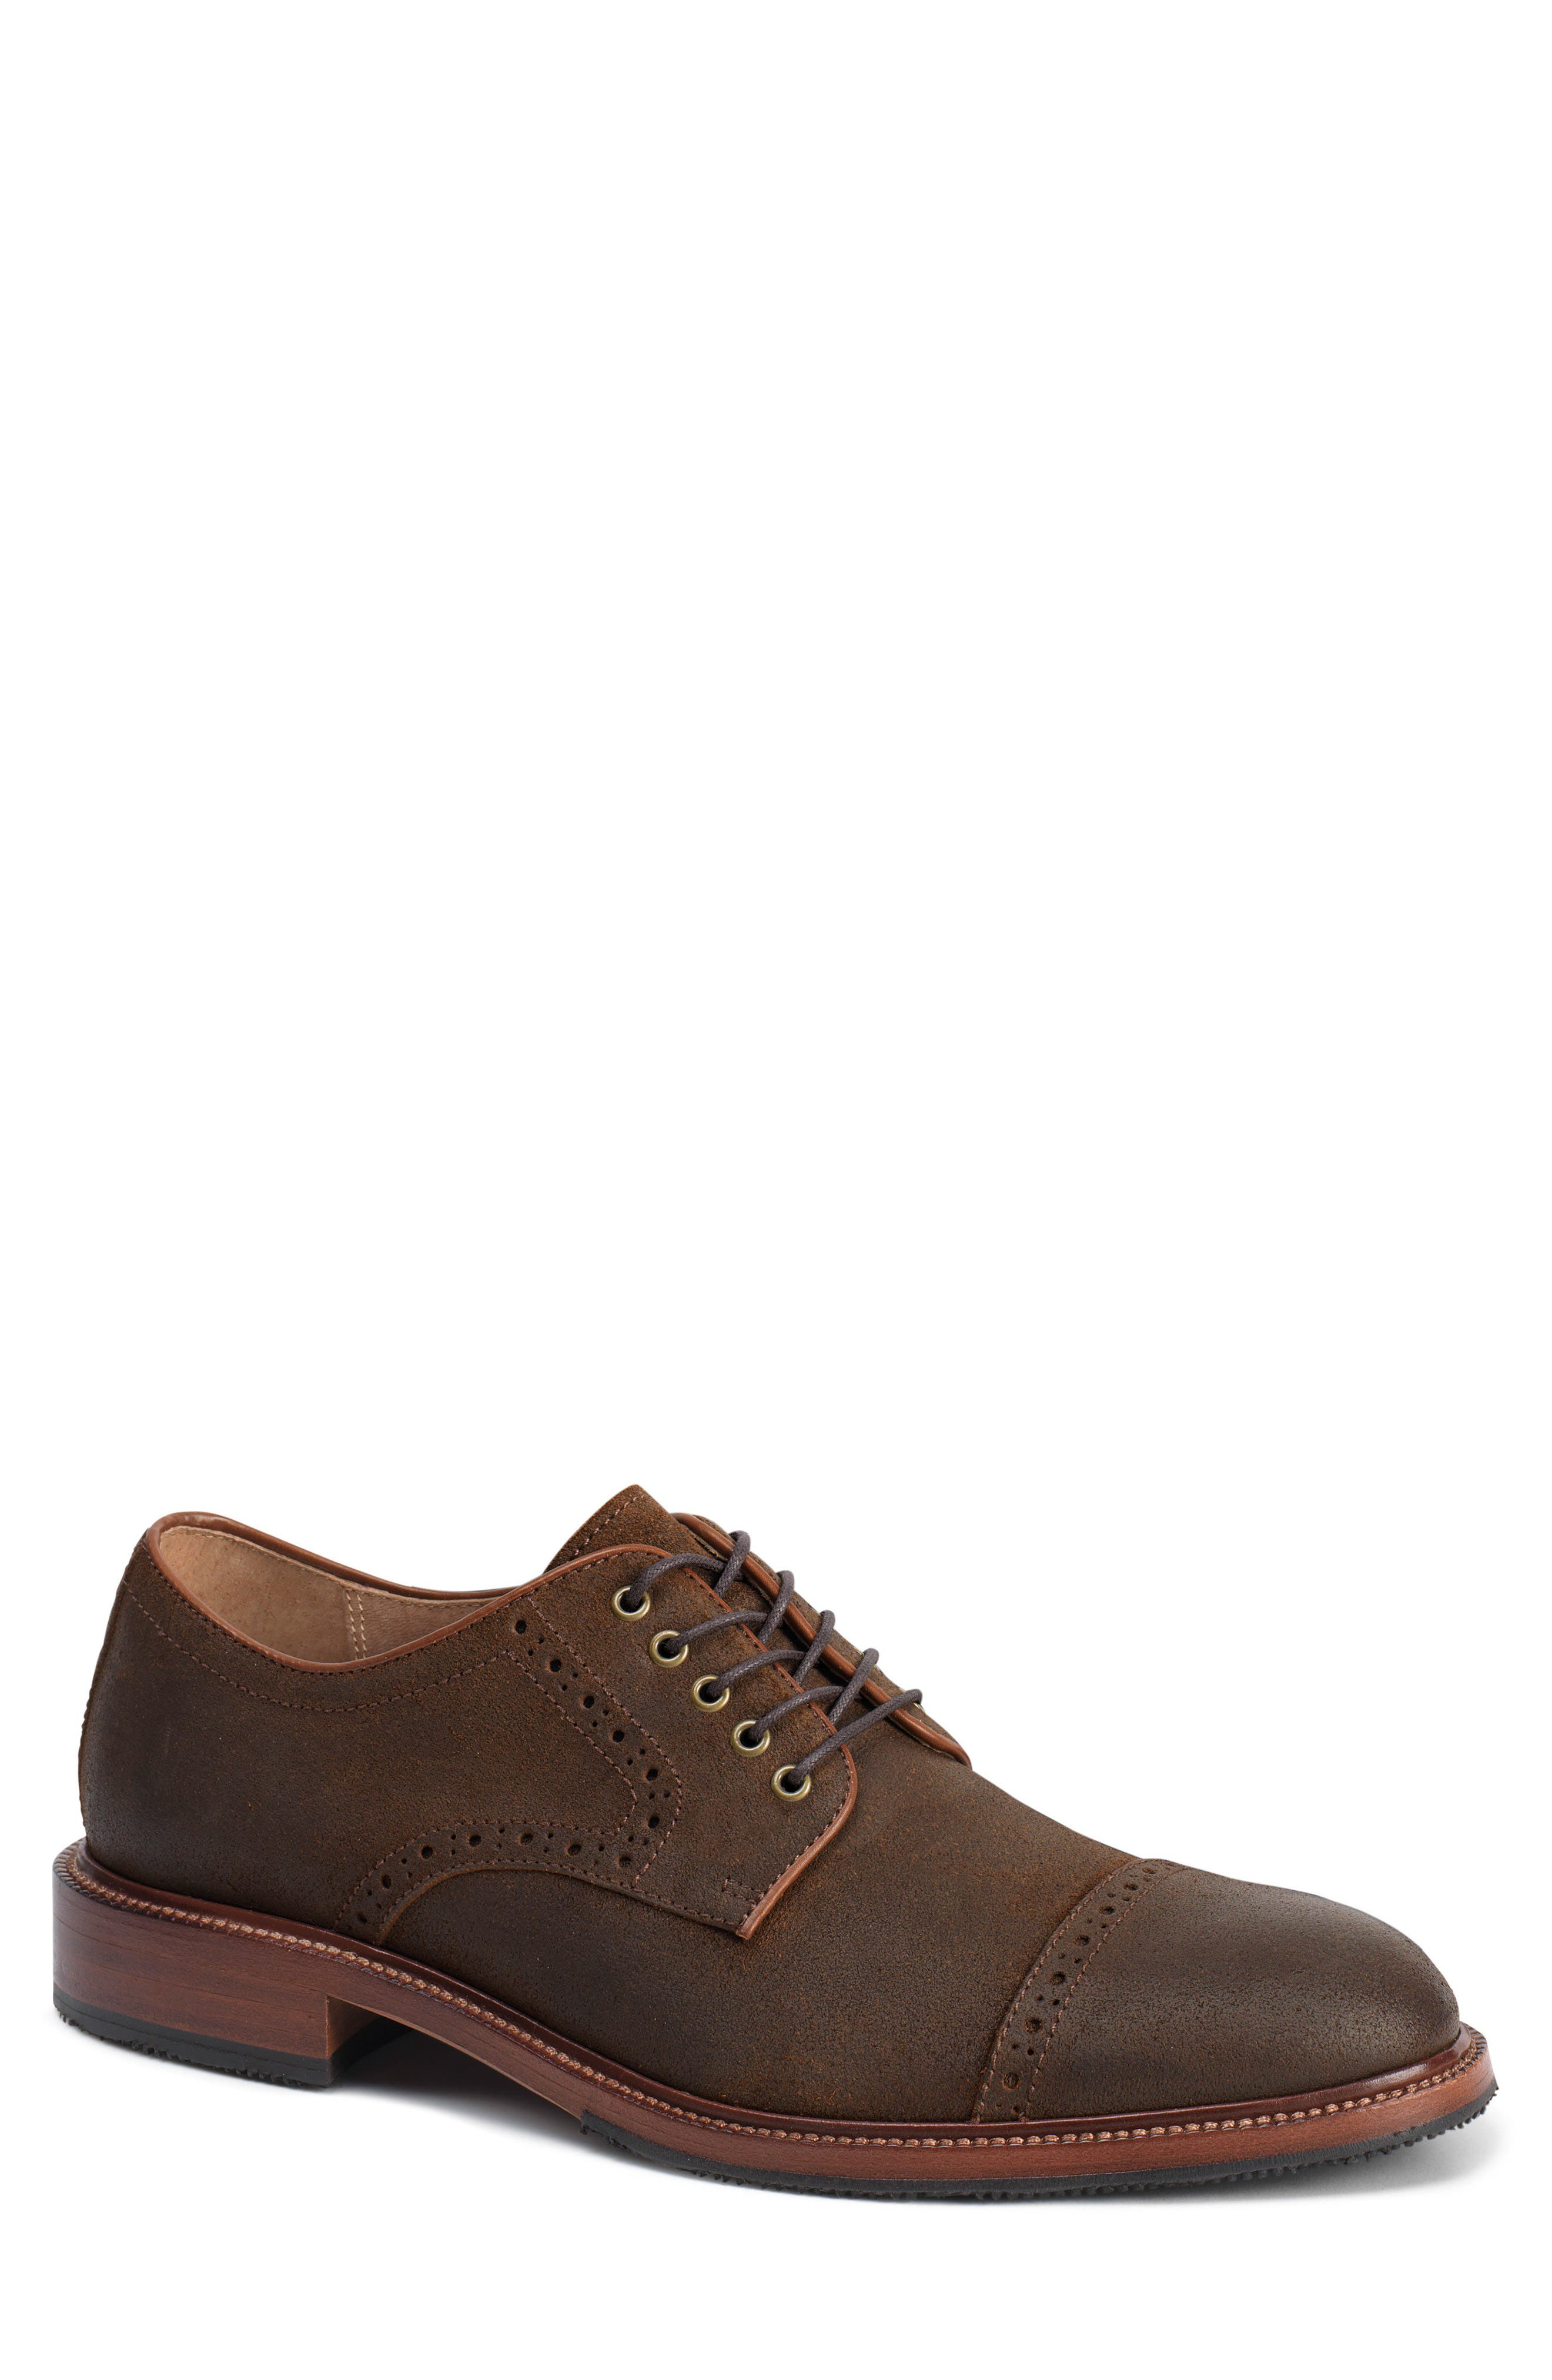 Linwood Cap Toe Derby,                         Main,                         color, BROWN WAXED SUEDE